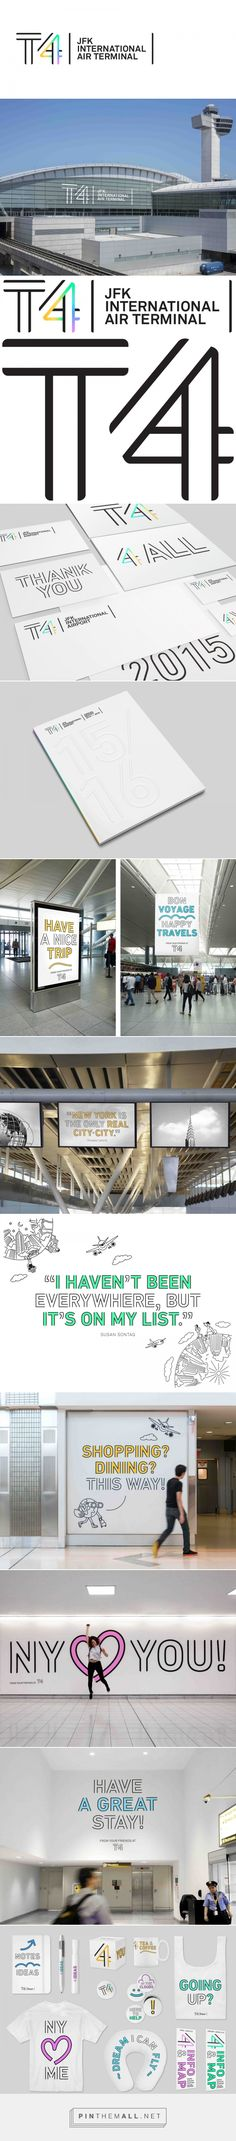 Brand New: New Logo and Identity for JFK Terminal 4 by Base Design... - a…